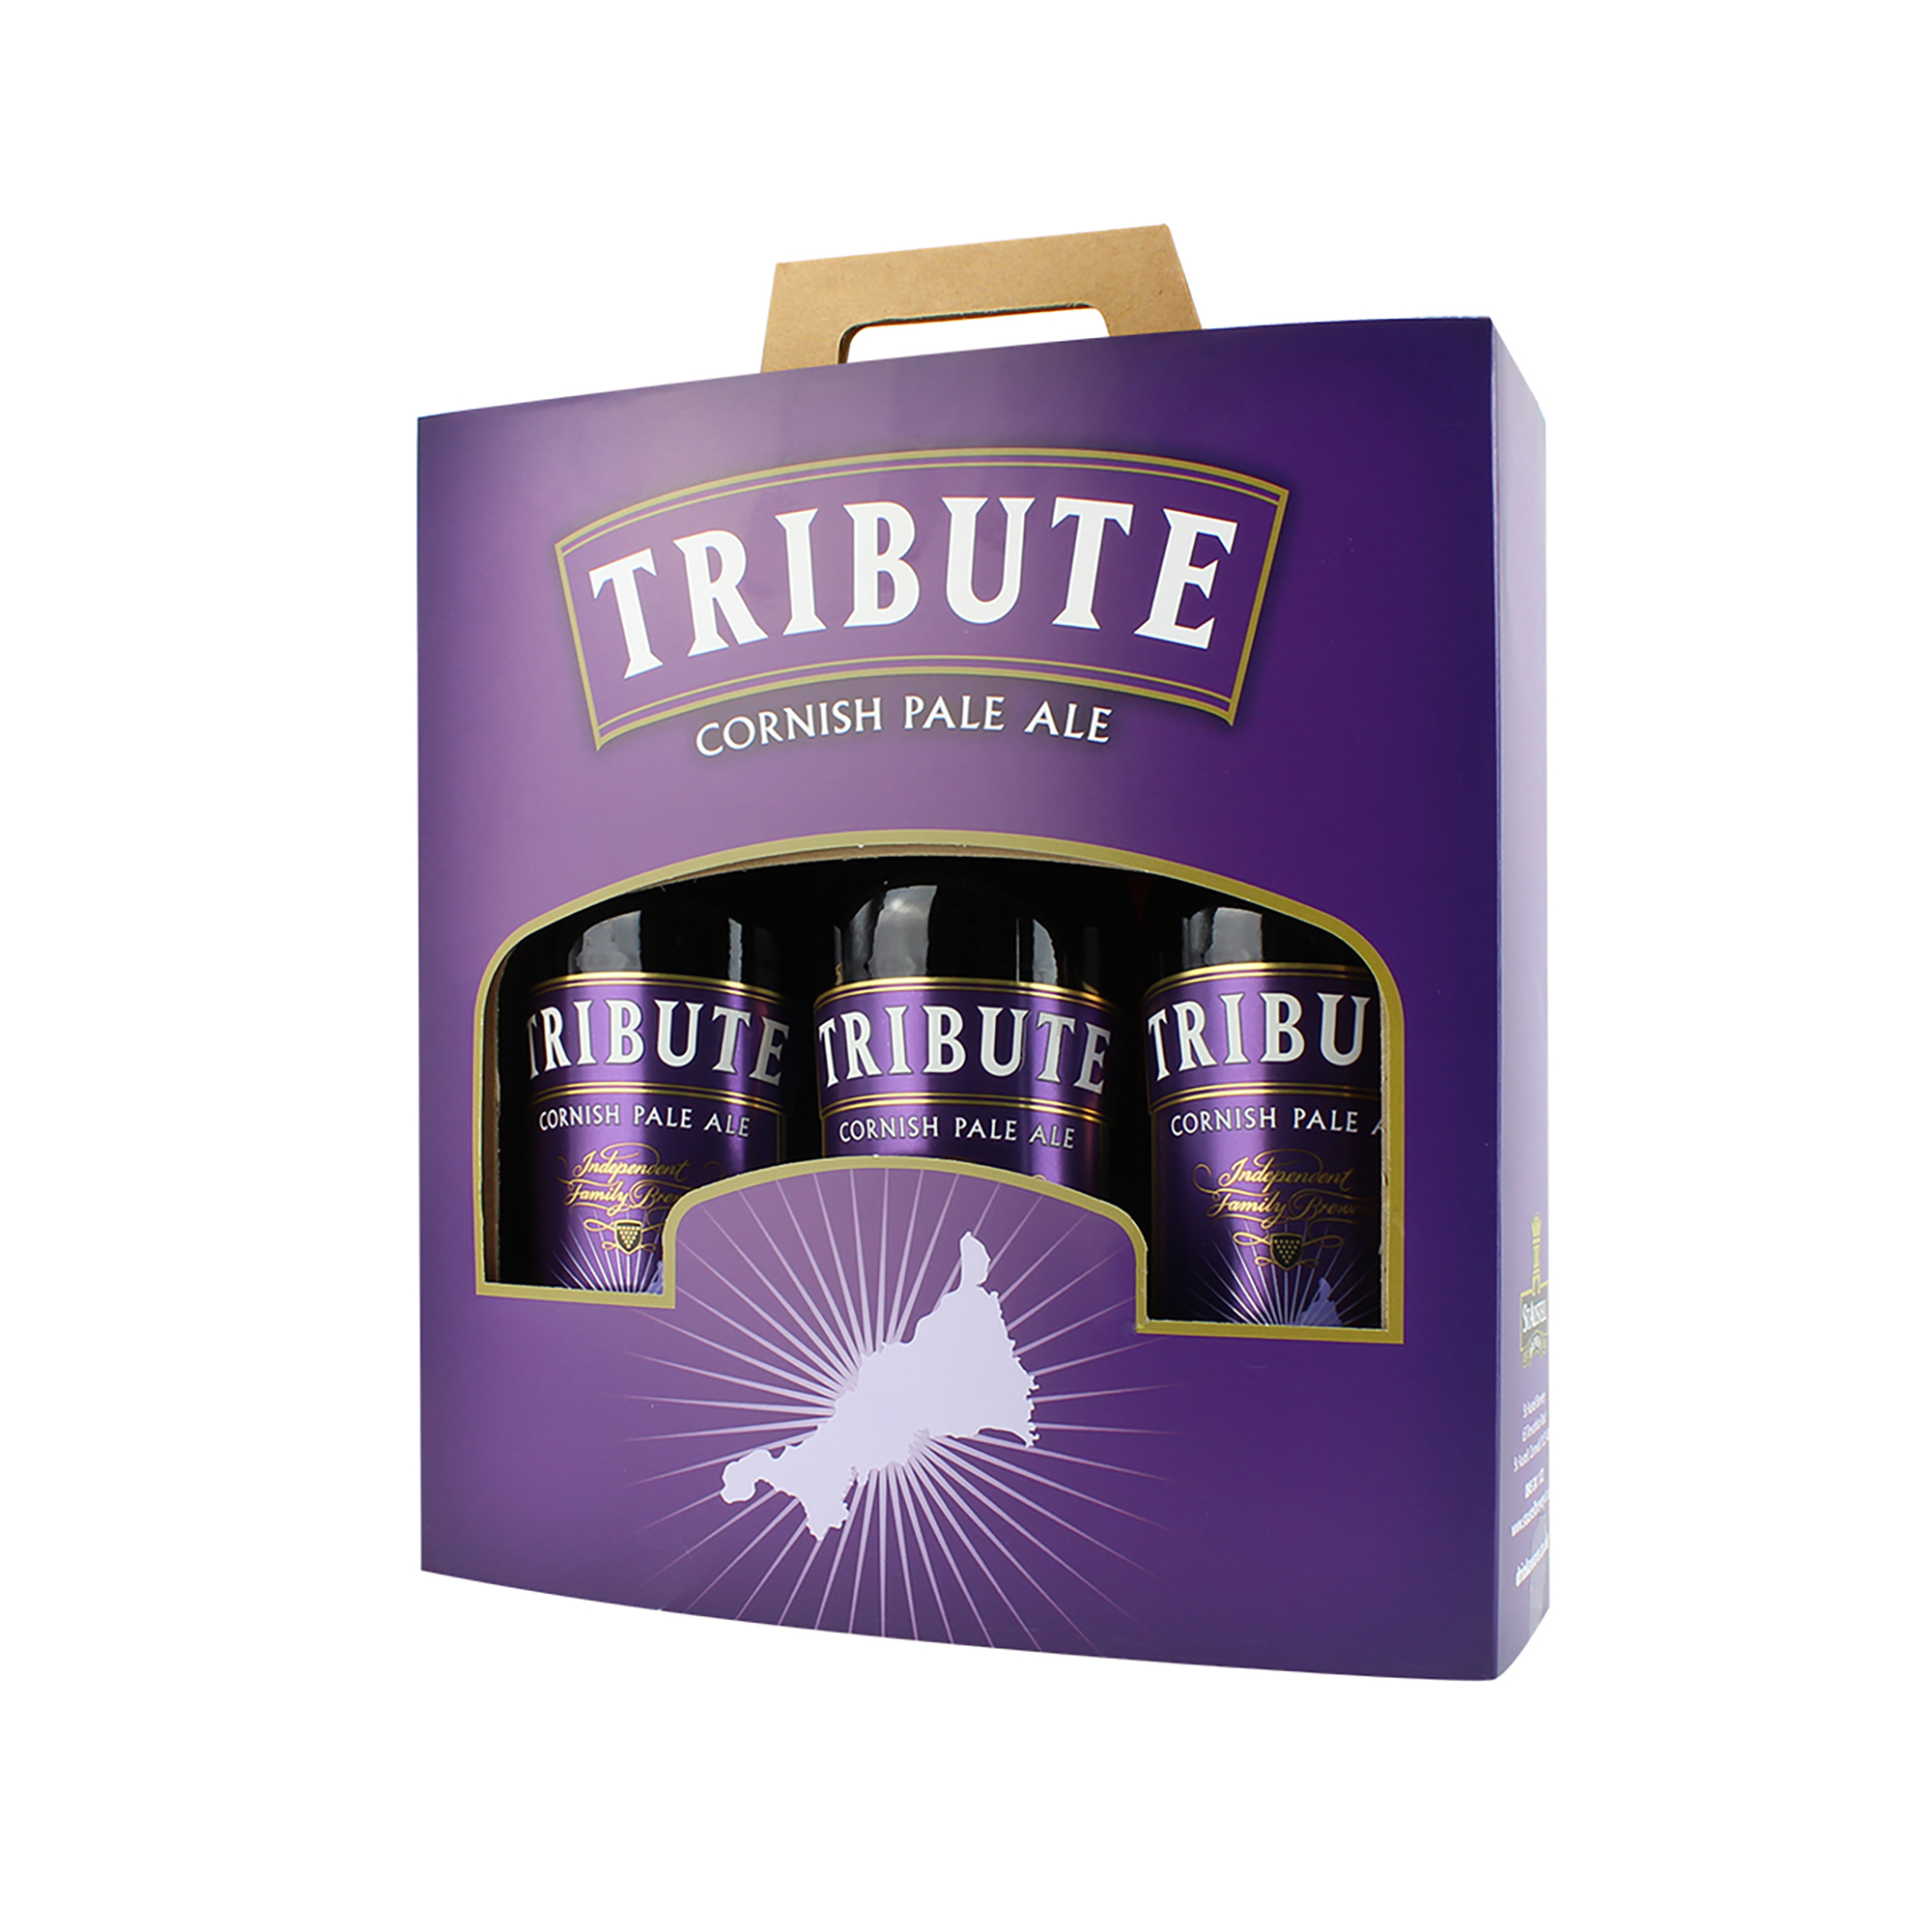 Tribute Three Bottle Gift Pack